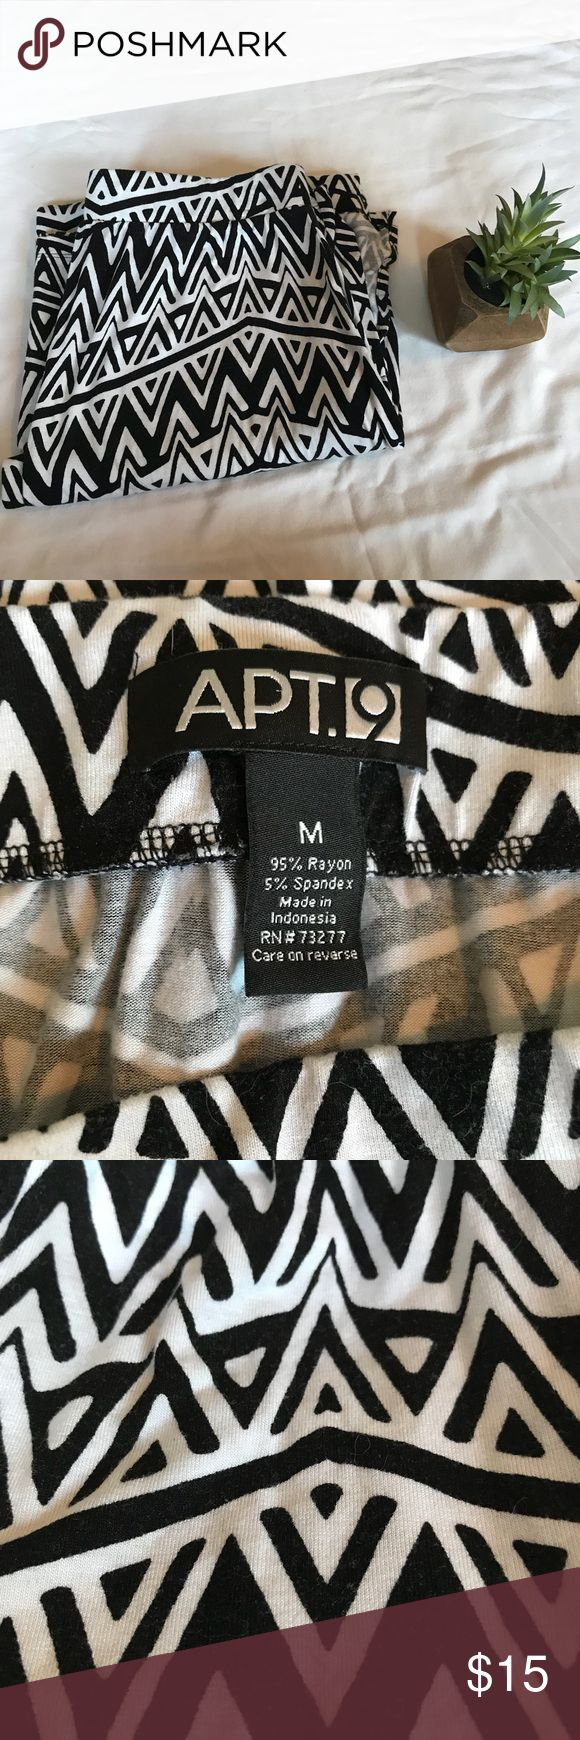 "🗻 Apt. 9 Black and White Aztec Maxi Skirt Black and white Aztec pattern in this fun maxi skirt. Size medium. Approximate waist measurement laying flat 30"", length 39"". Price is firm due to Posh fees. Apt. 9 Skirts Maxi"